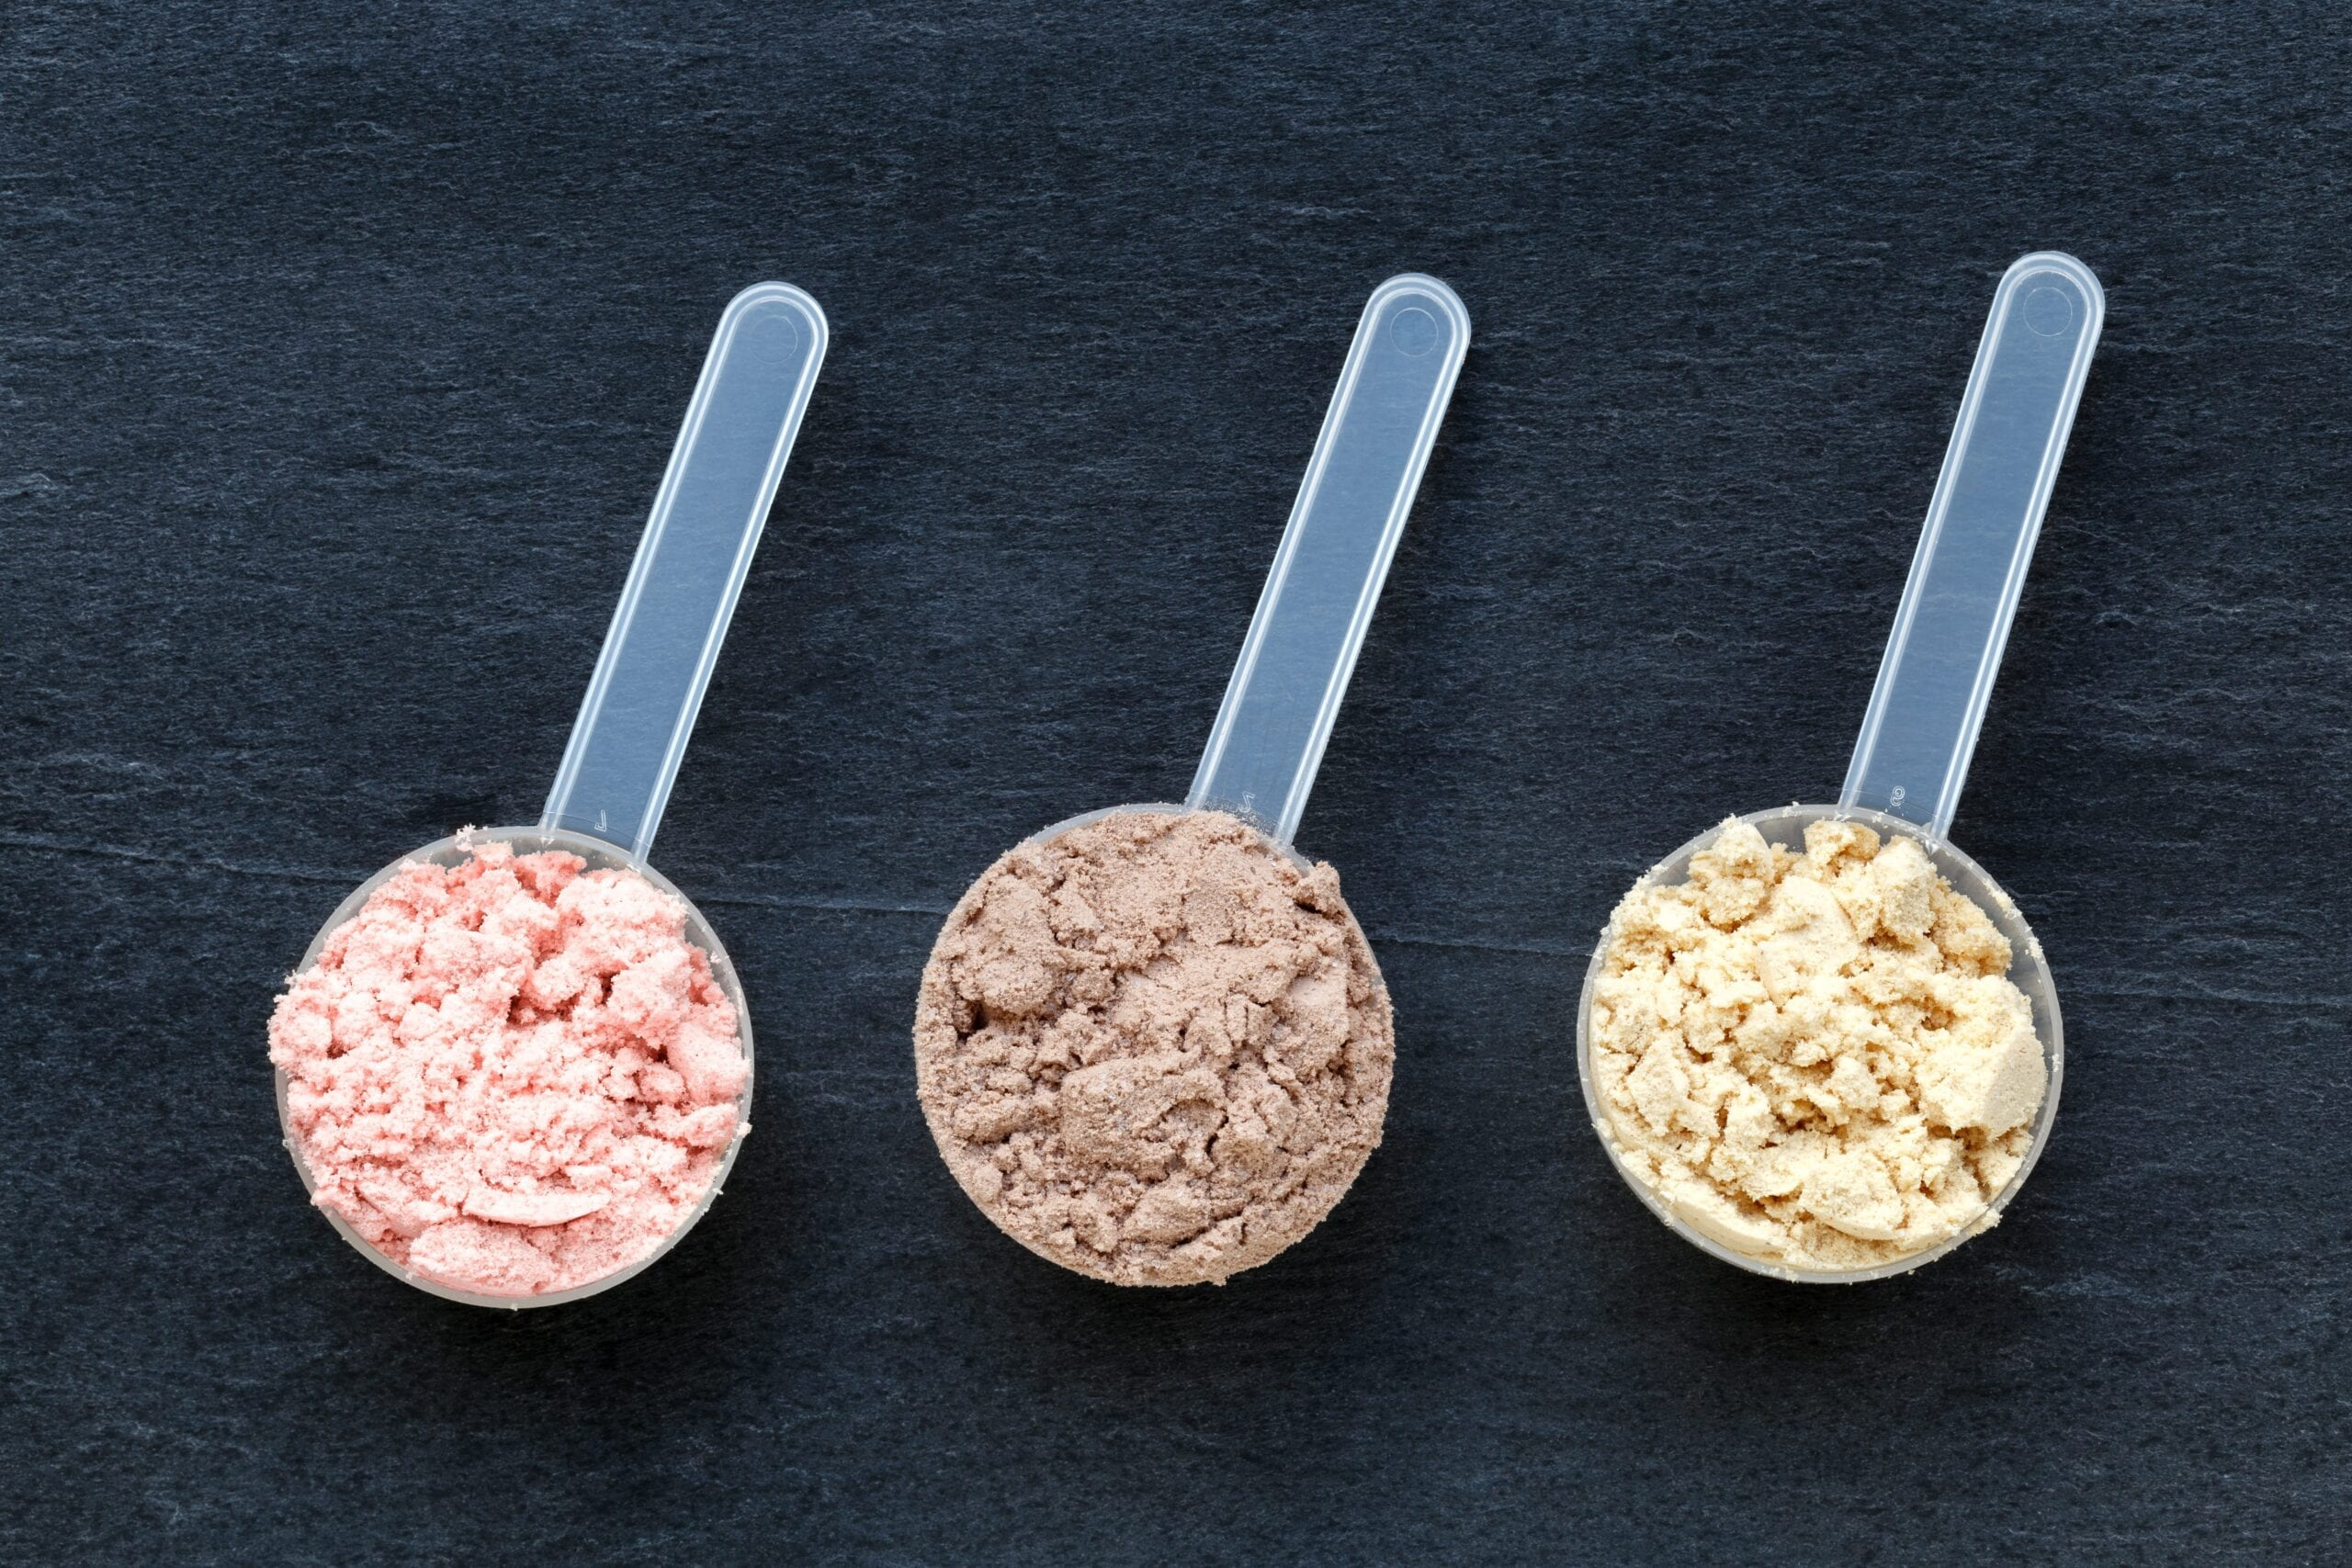 whey protein and collagen protein powders scoops lined up next to each other